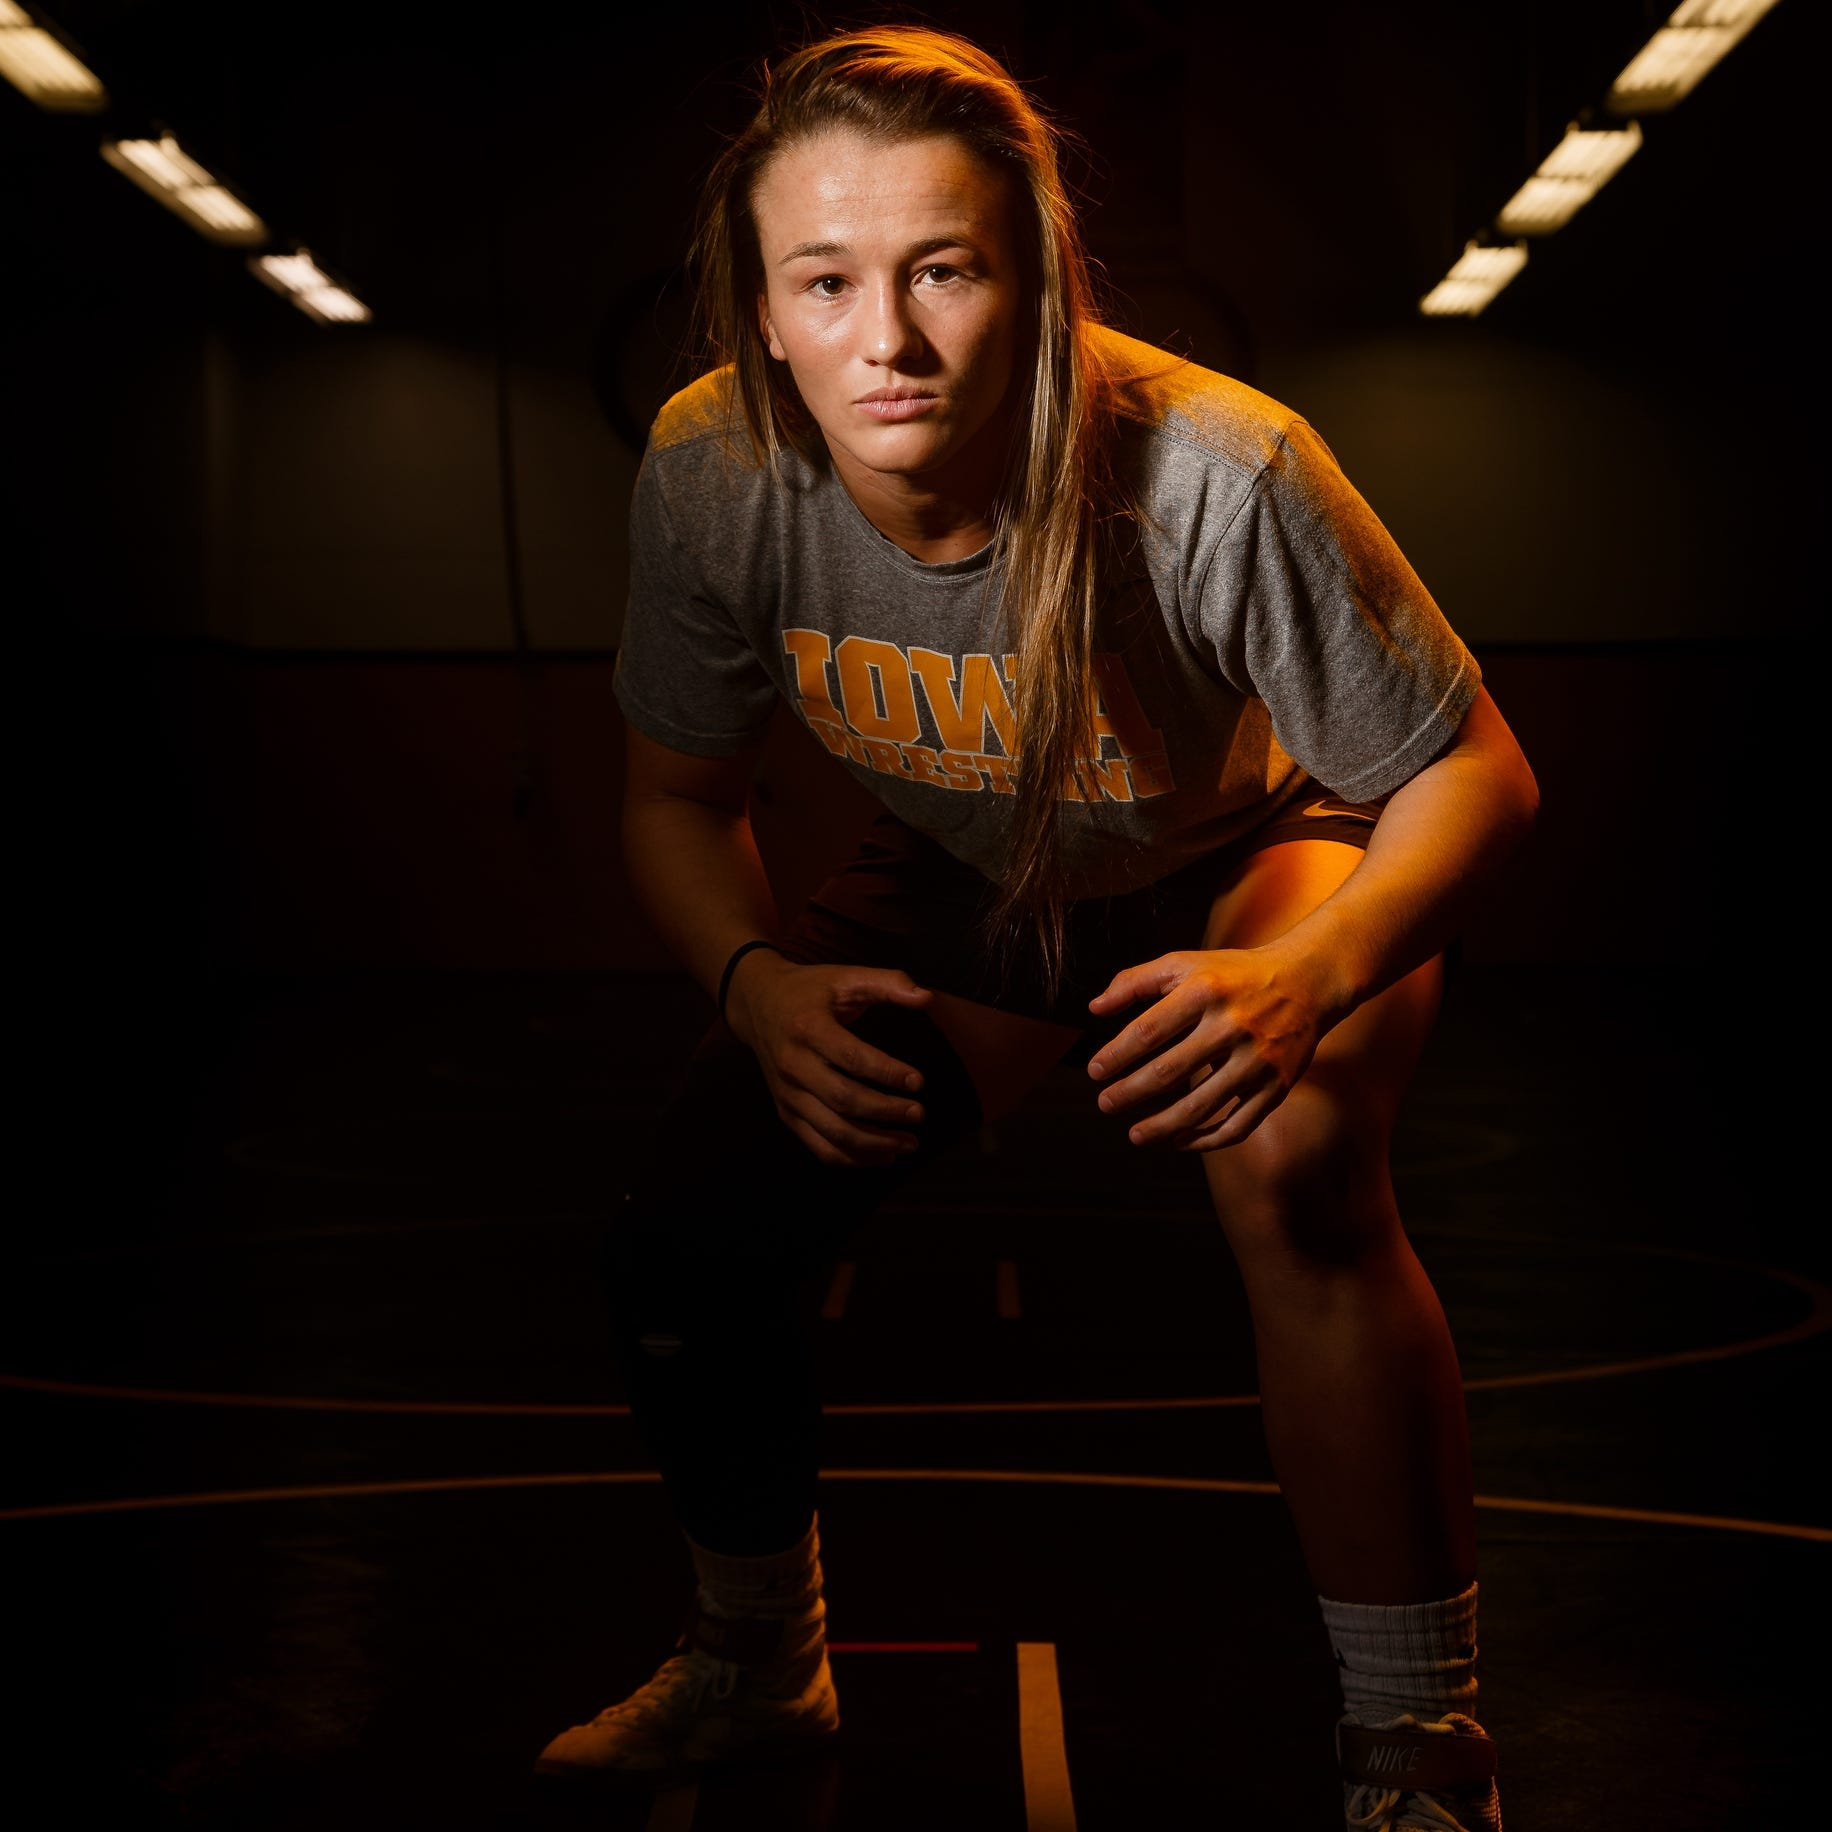 Meet Forrest Molinari, member of the Hawkeye Wrestling Club and one of the country's best female freestyle wrestlers